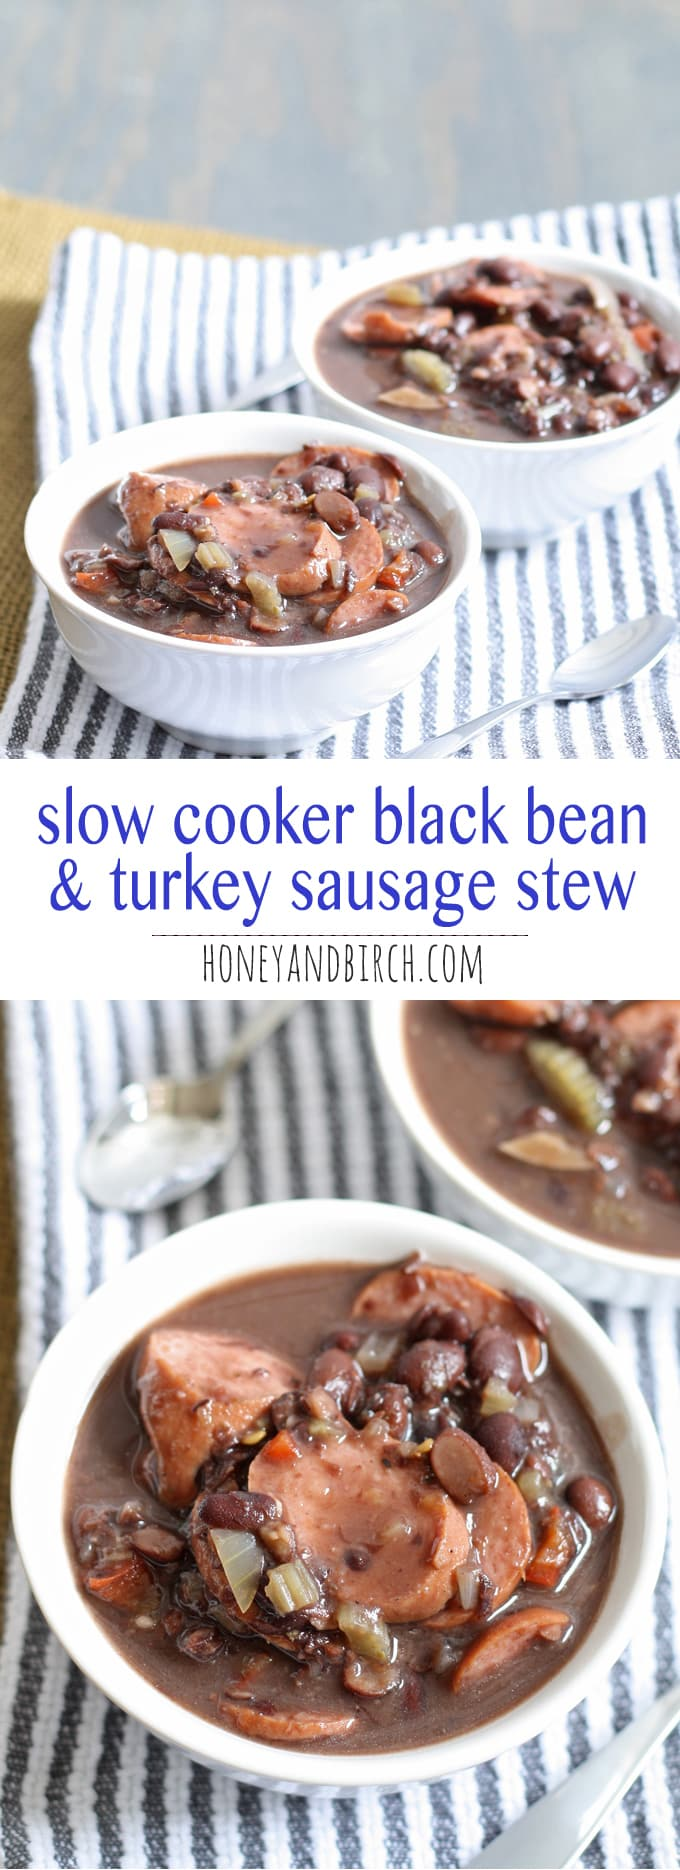 A delicious and easy recipe for slow cooker black bean turkey sausage stew. It requires very little prep but packs a lot of flavor into every bite!   honeyandbirch.com